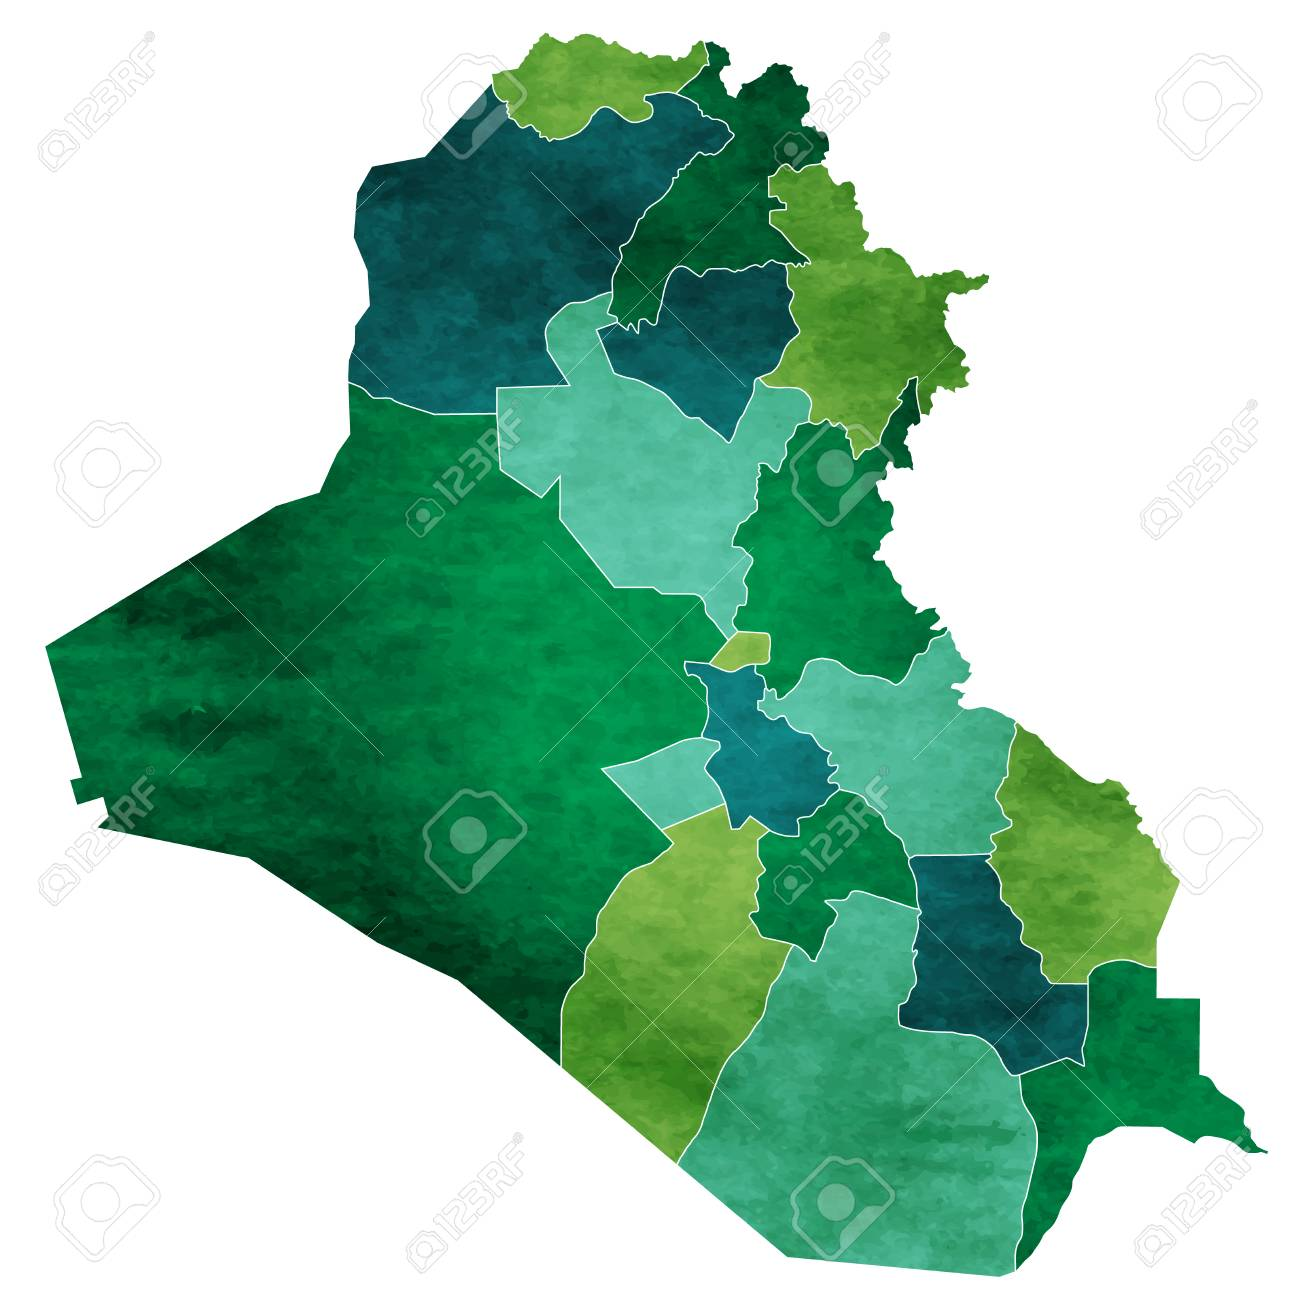 Iraq world map country icon royalty free cliparts vectors and iraq world map country icon stock vector 93761755 gumiabroncs Images